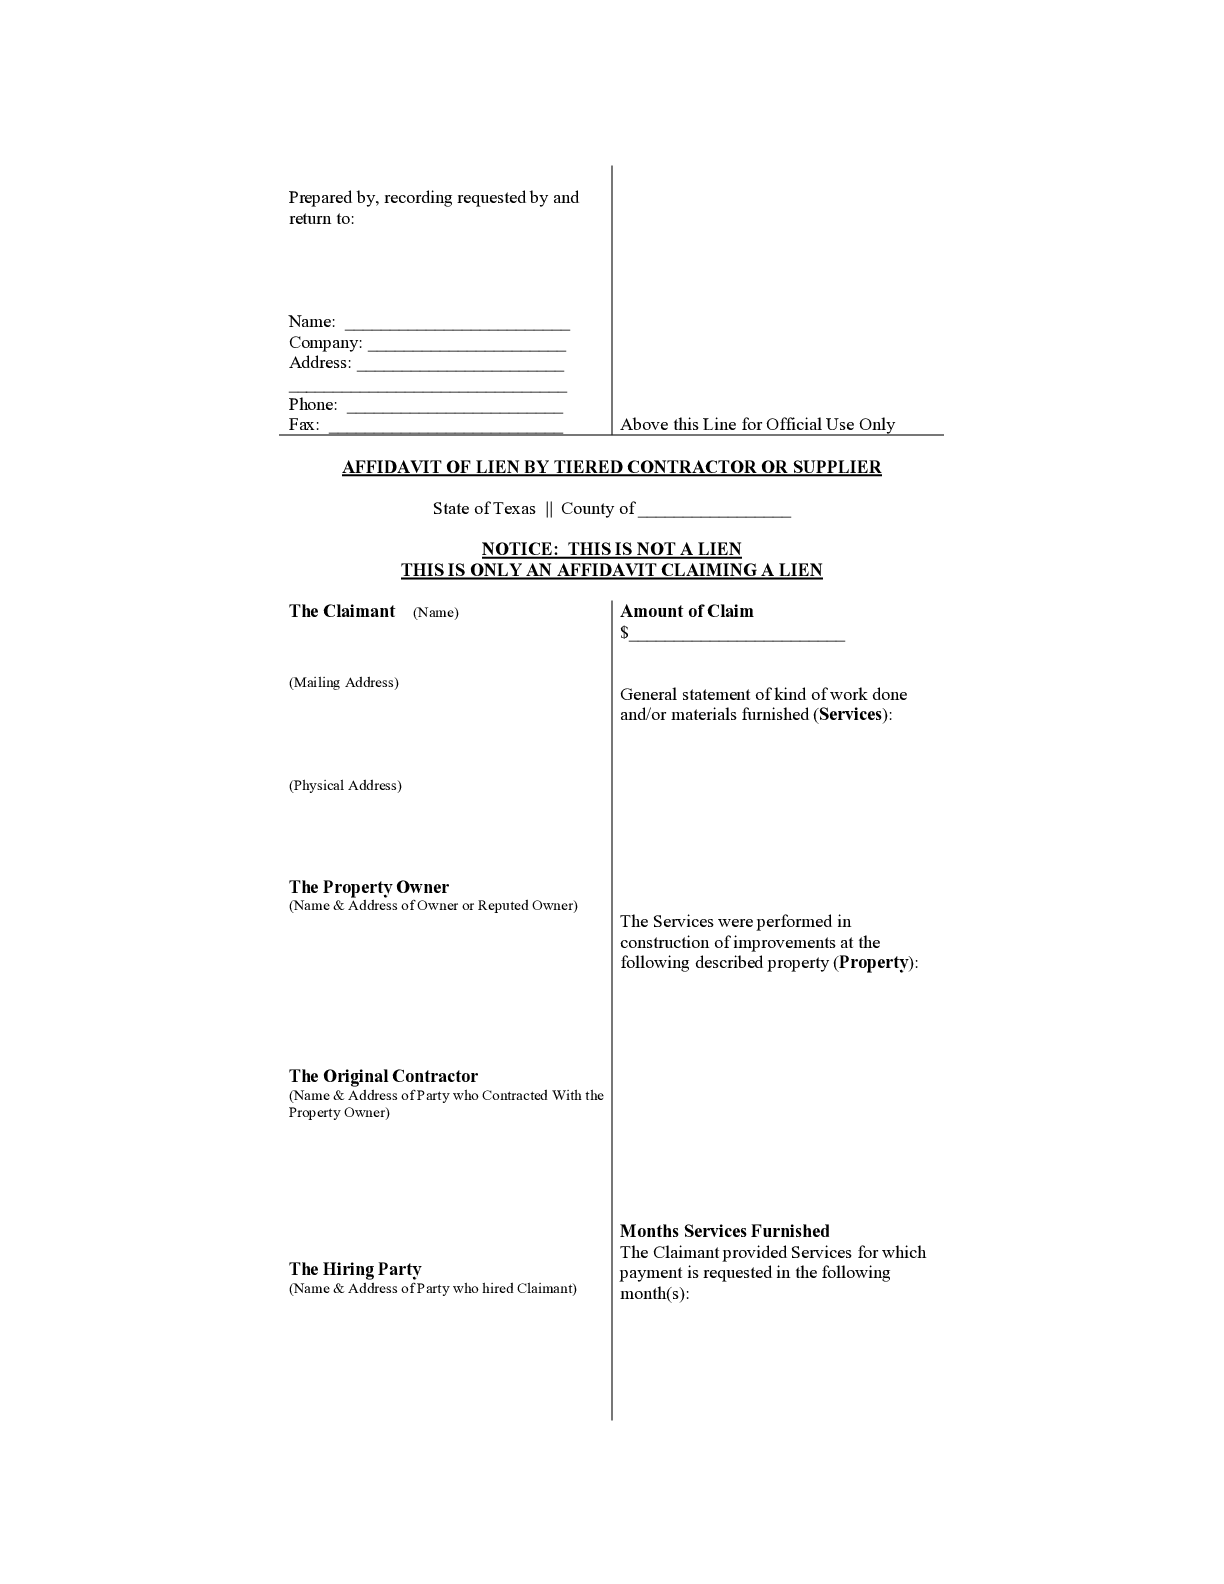 Texas Affidavit of Lien by Subcontractor Form